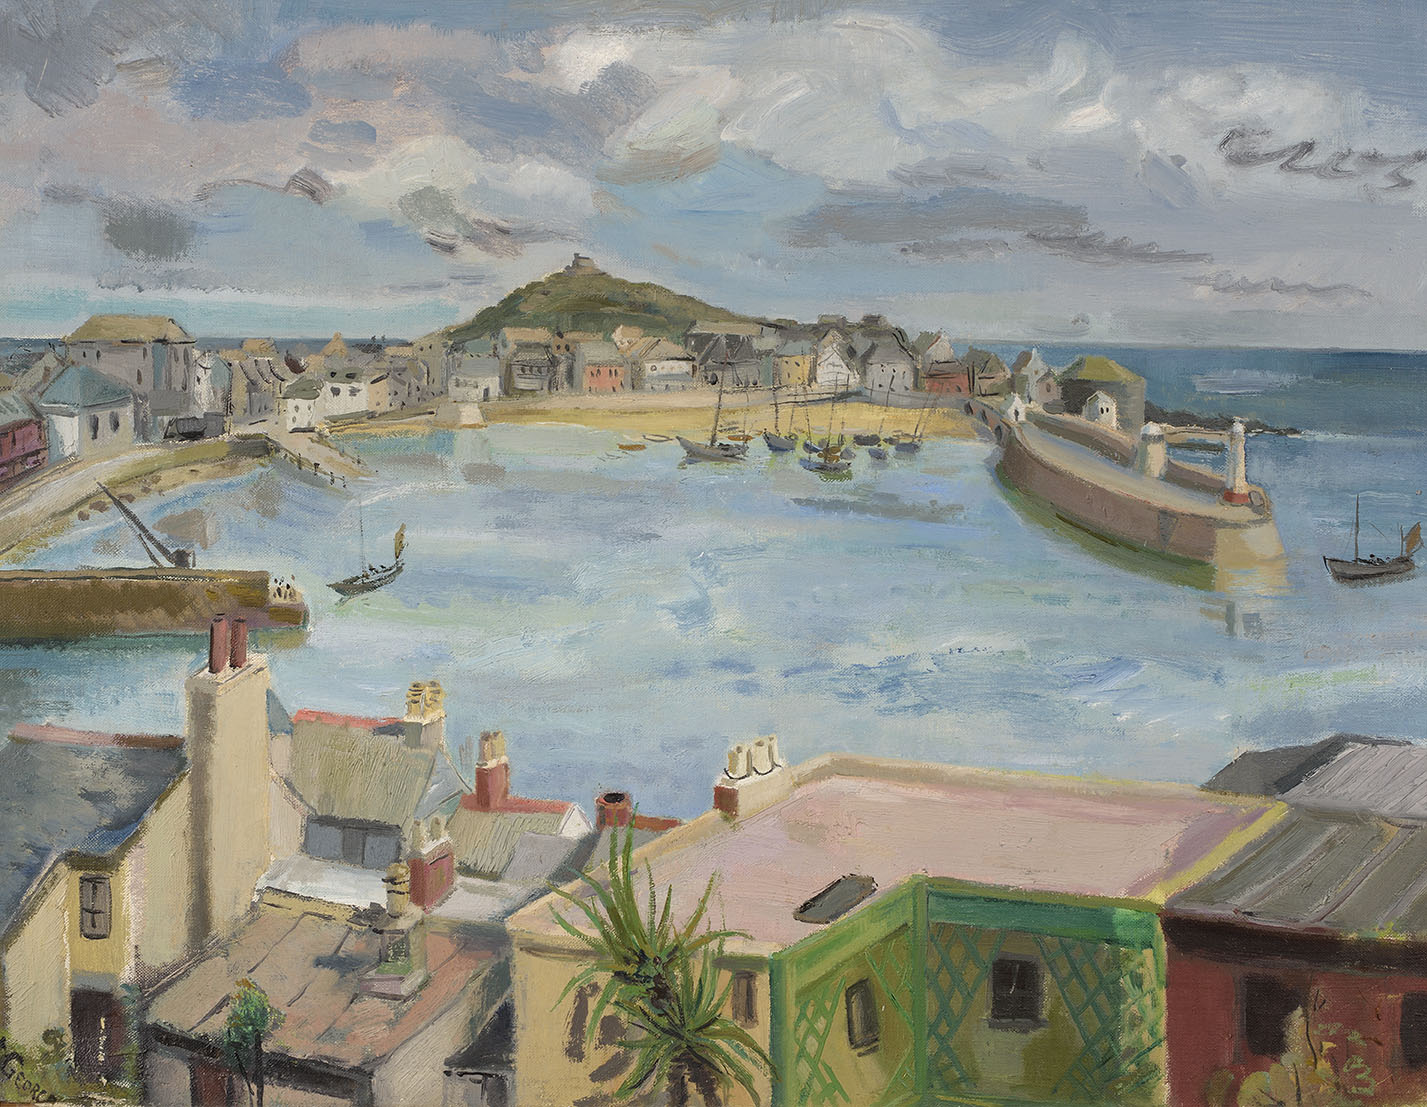 Sylvia St George (1881-1950)    St Ives, Cornwall,  Oil on canvas, 18 x 24 in, Signed  [CAS 15] Acquired in 1968